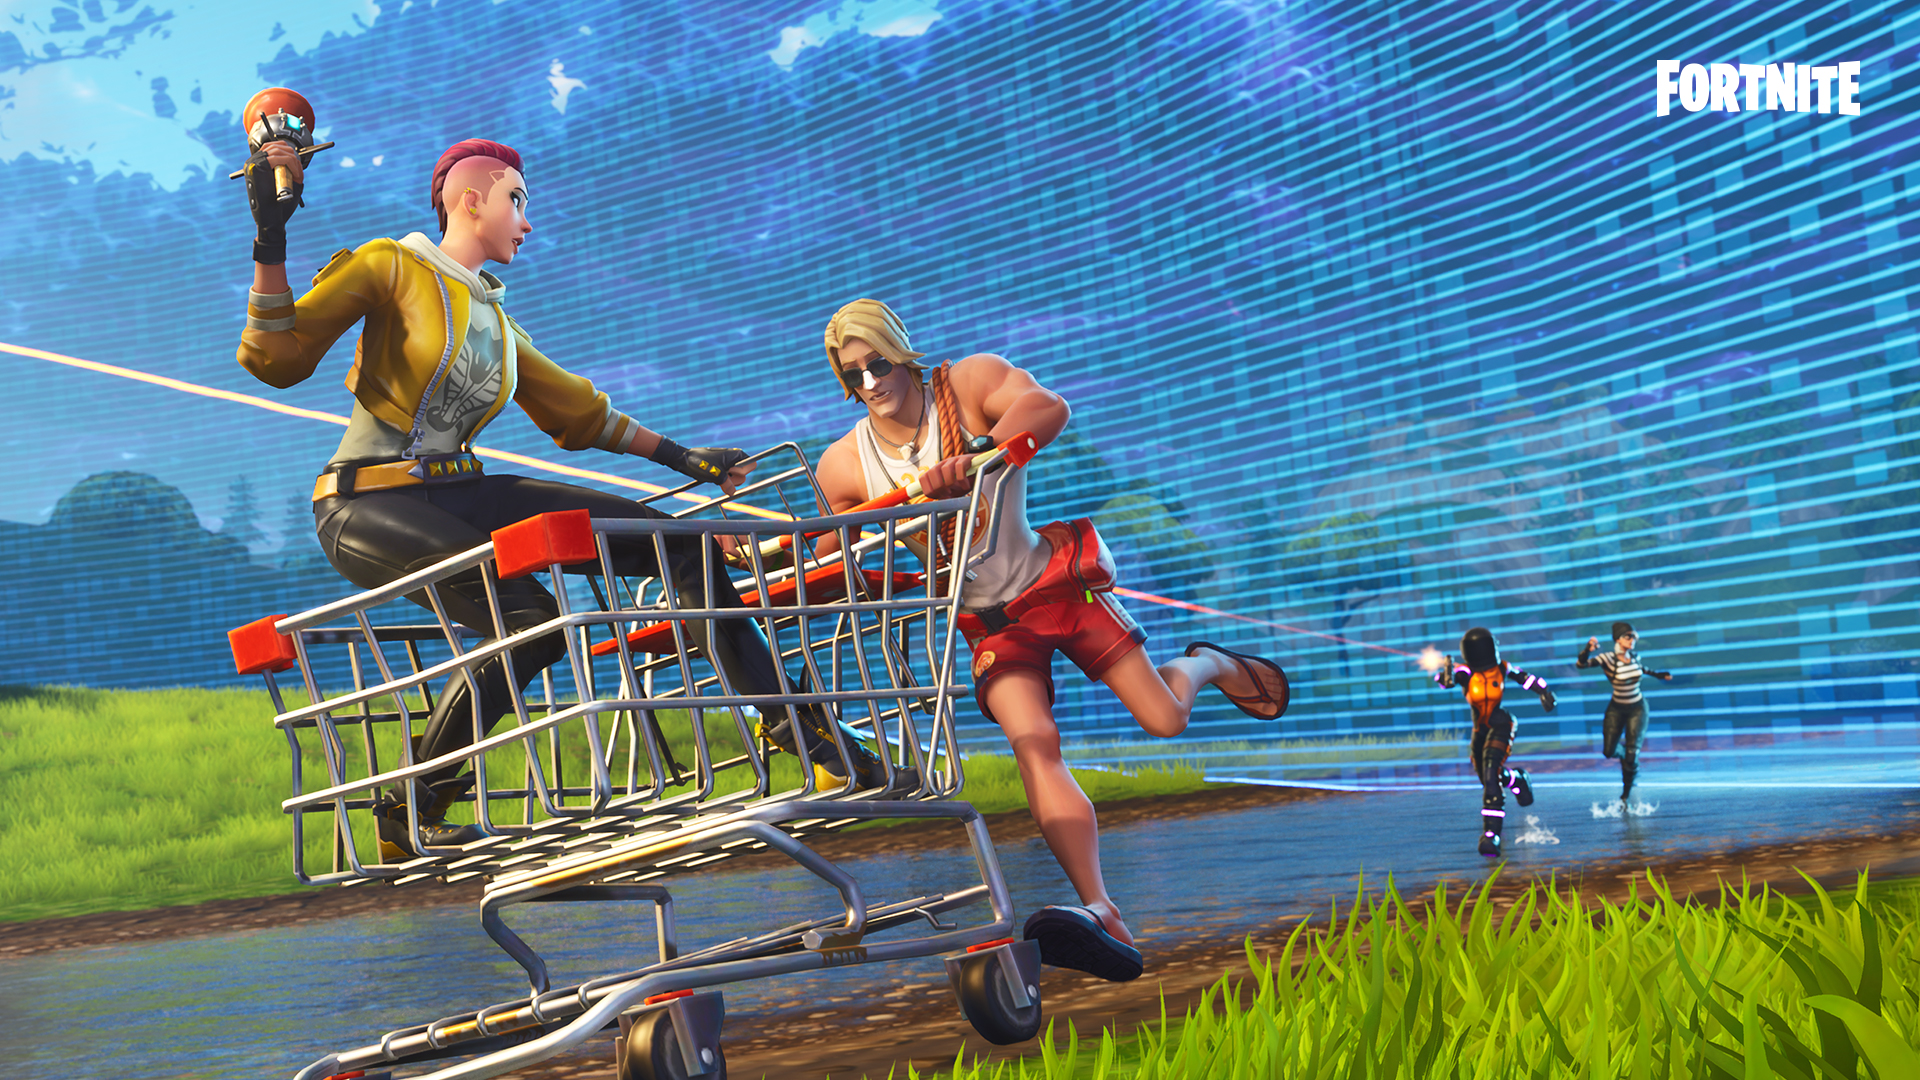 Fortnite_patch-notes_v5-20_overview-text-v5-20_BR05_Social_LTM-Steady-Storm-1920x1080